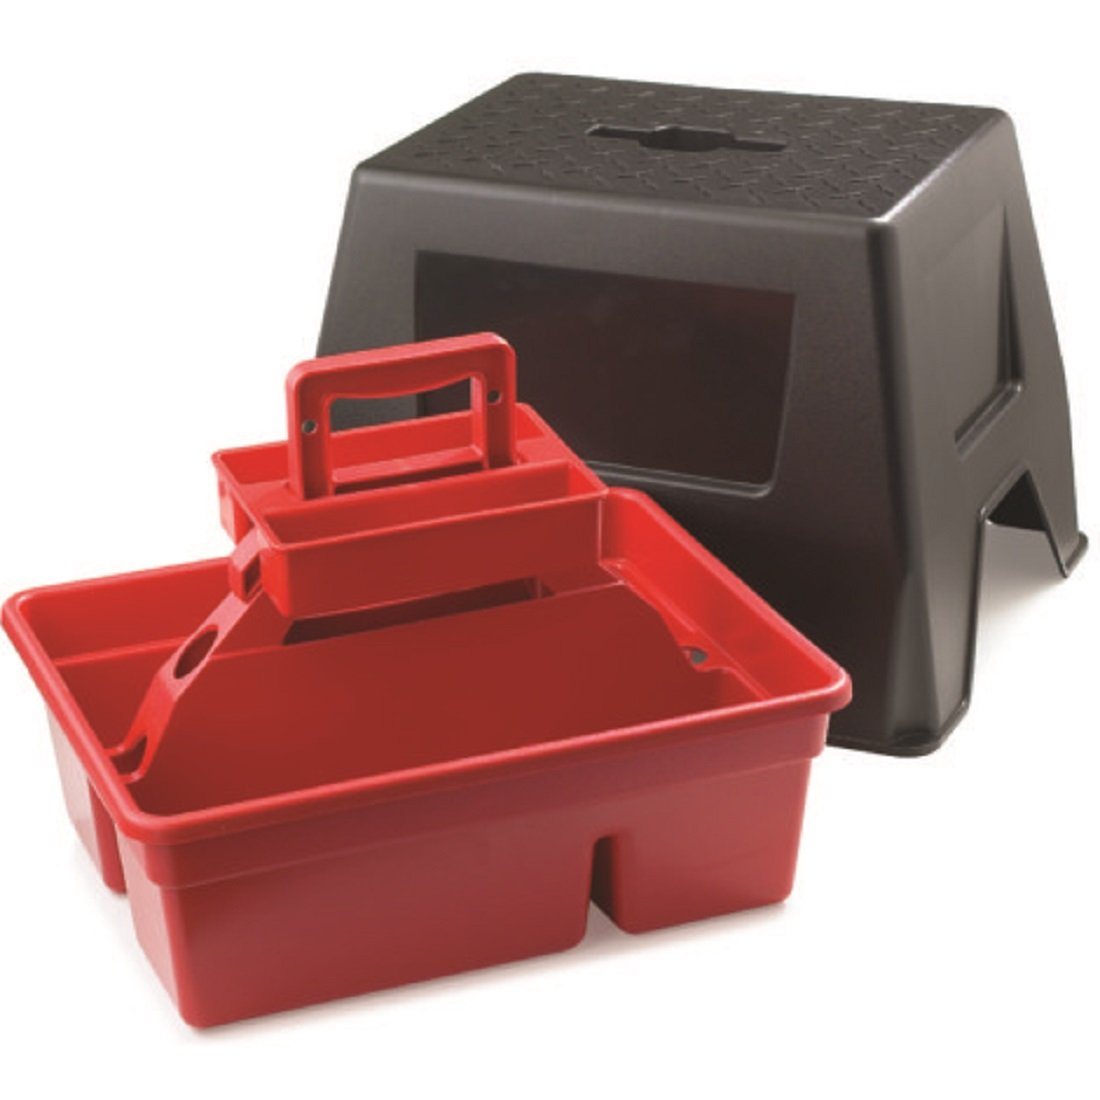 Duratote LITTLE GIANT 2-Step Anti-Slip Black Step Stool with Tool Box - 300 LB. Load Capacity - 18'' L x 16'' W x 15'' H - Made from lightweight and non-toxic material